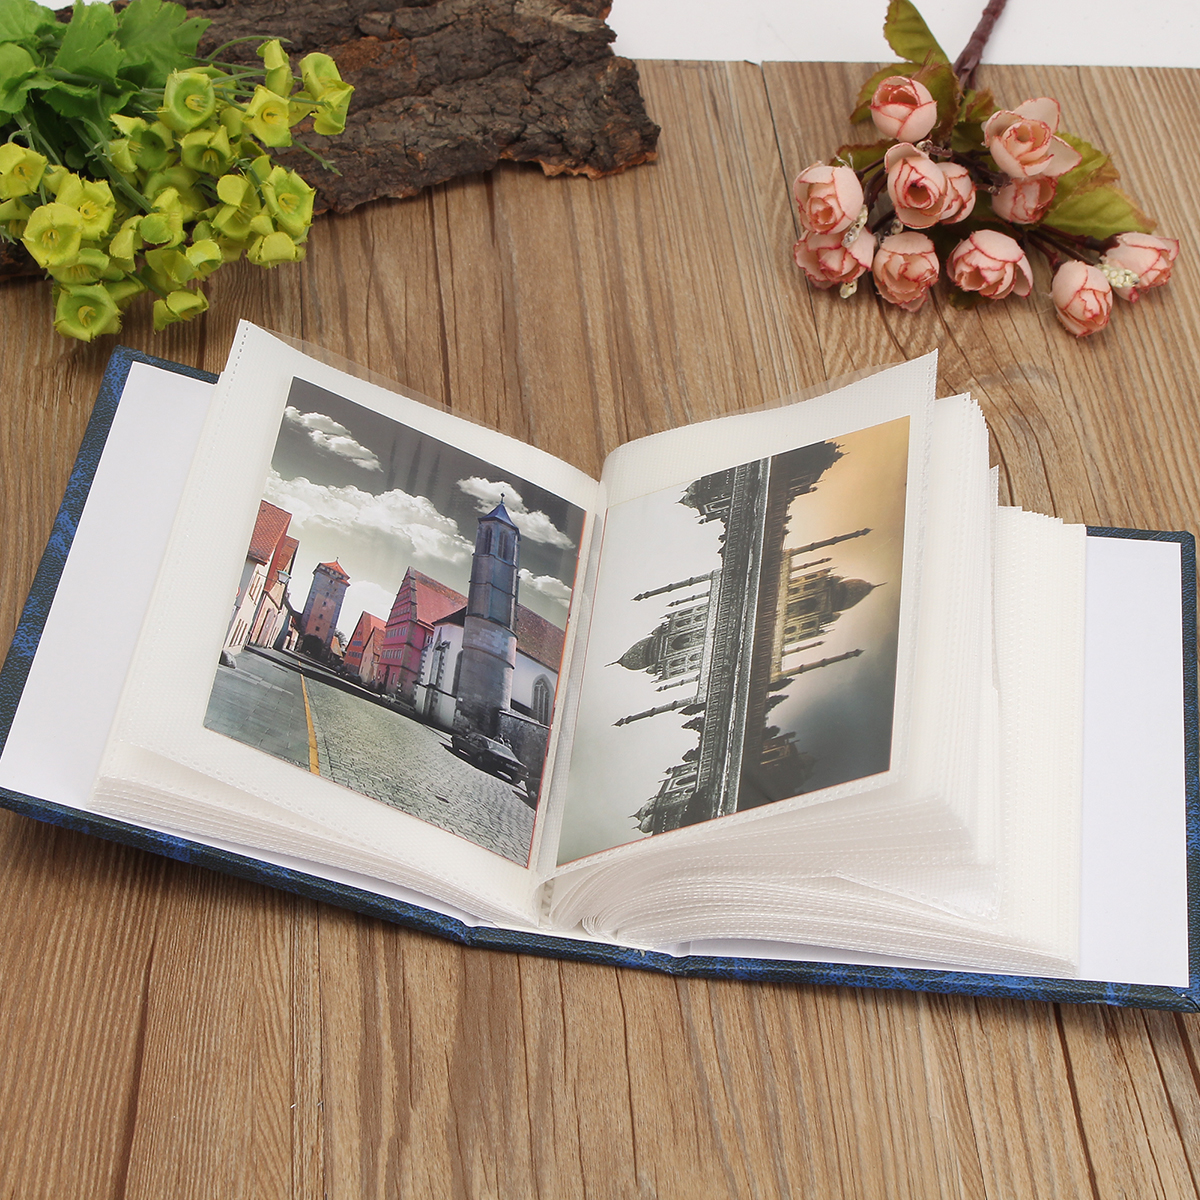 100Pcs Memory Pictures Storage Wedding Photo Scrapbook Gifts Household Design Photo Album